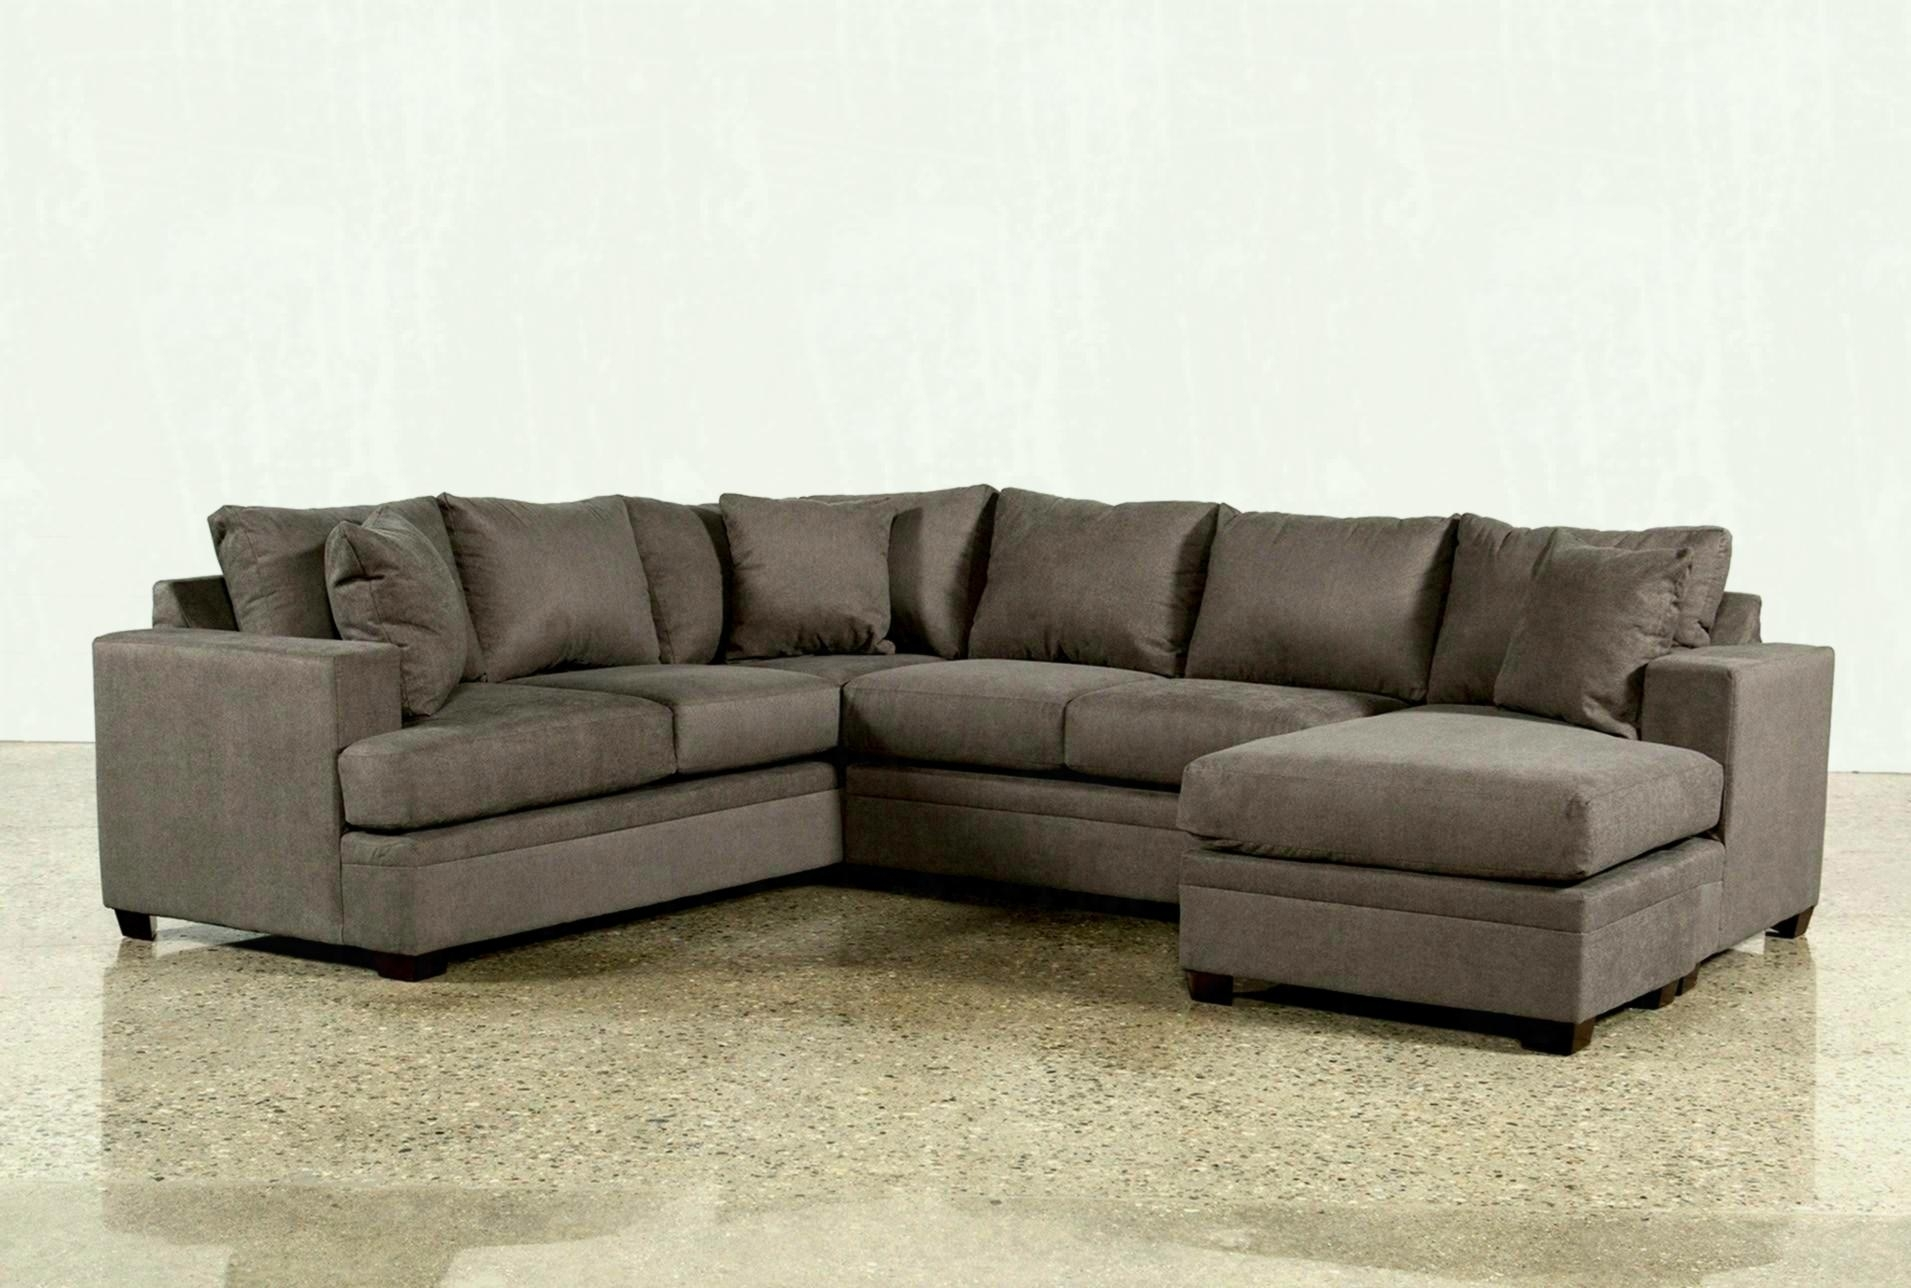 Added To Cart Kerri Piece Sectional W Raf Chaise Living Spaces Pertaining To Aquarius Light Grey 2 Piece Sectionals With Laf Chaise (View 8 of 30)